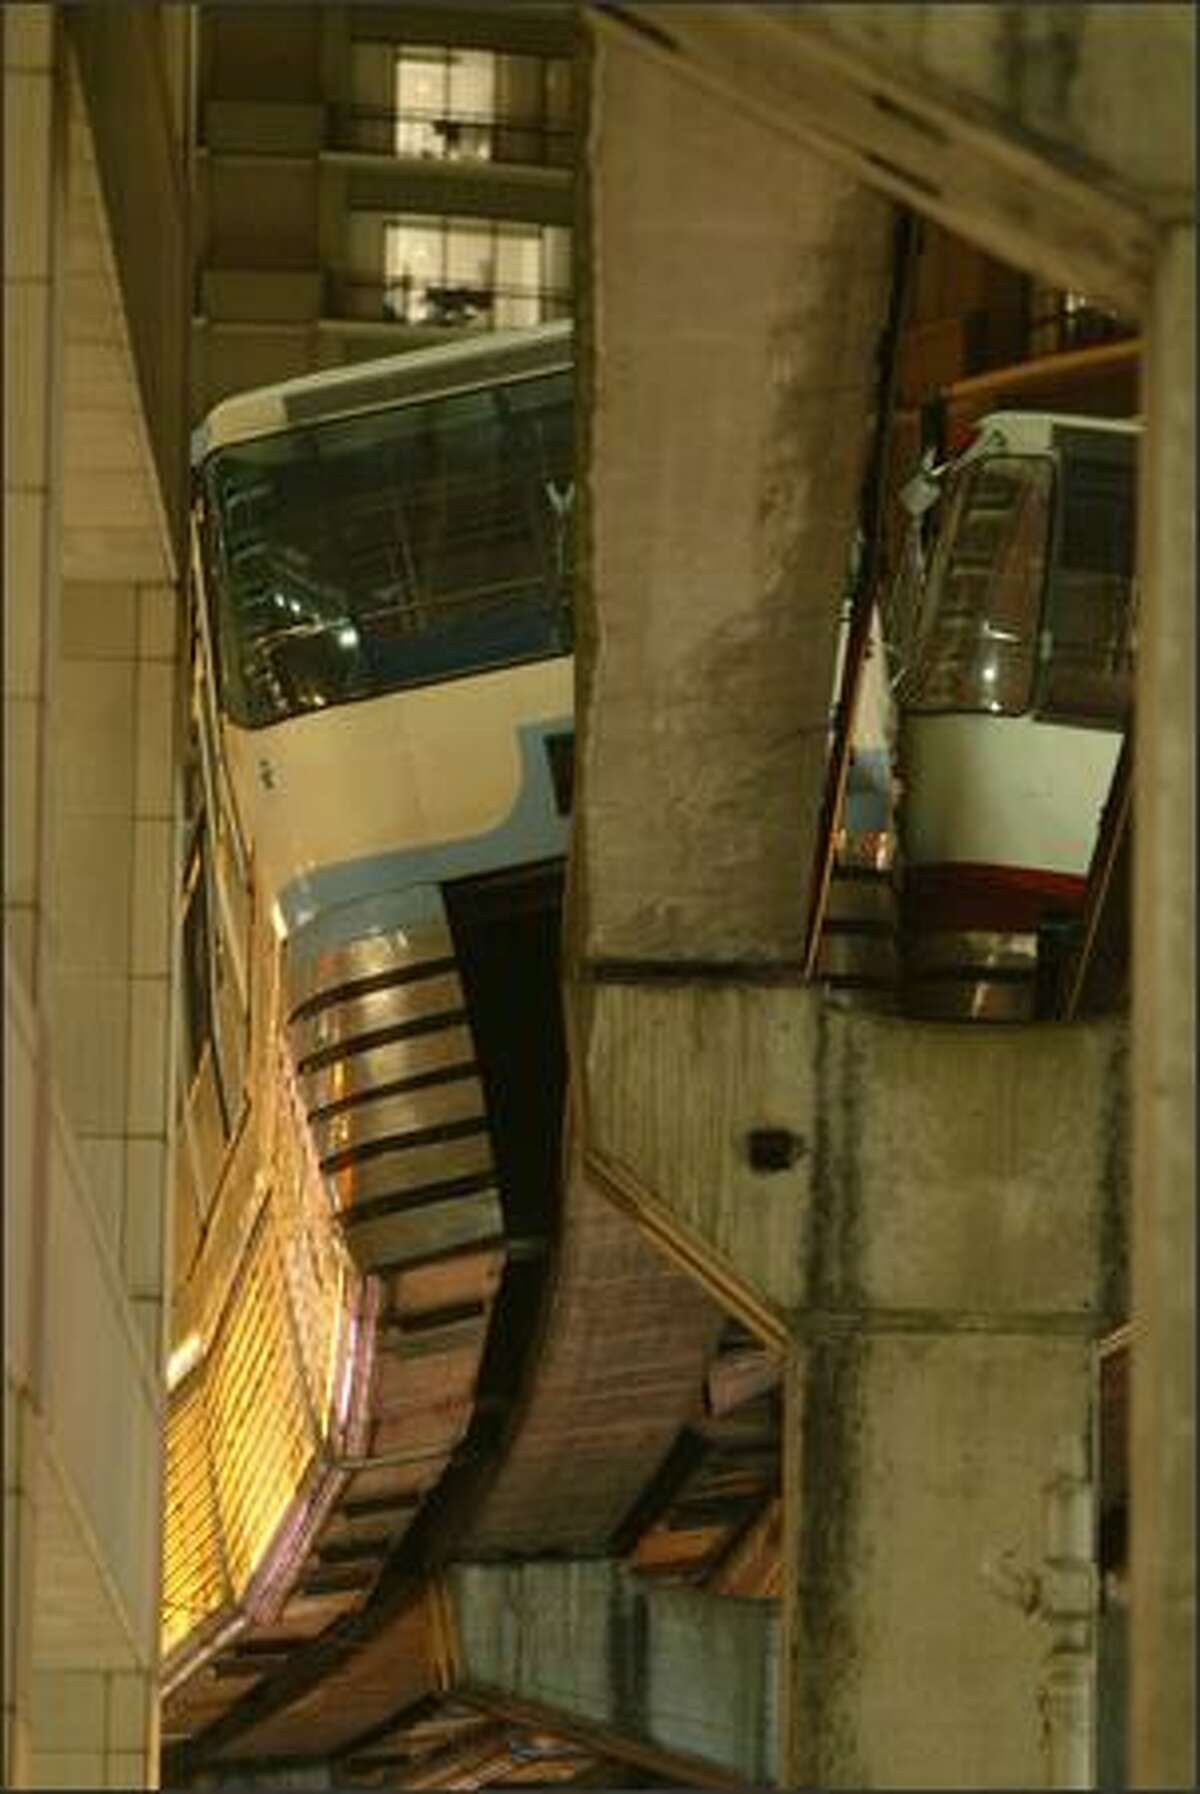 Firefighters had to evacuate Seattle's two monorail trains after they clipped each other Saturday night near Westlake Center, where the track narrows. Bystanders said it appeared one train was going to fall to the ground, and passengers all moved to one side of the train. Glass rained down on the sidewalk below.